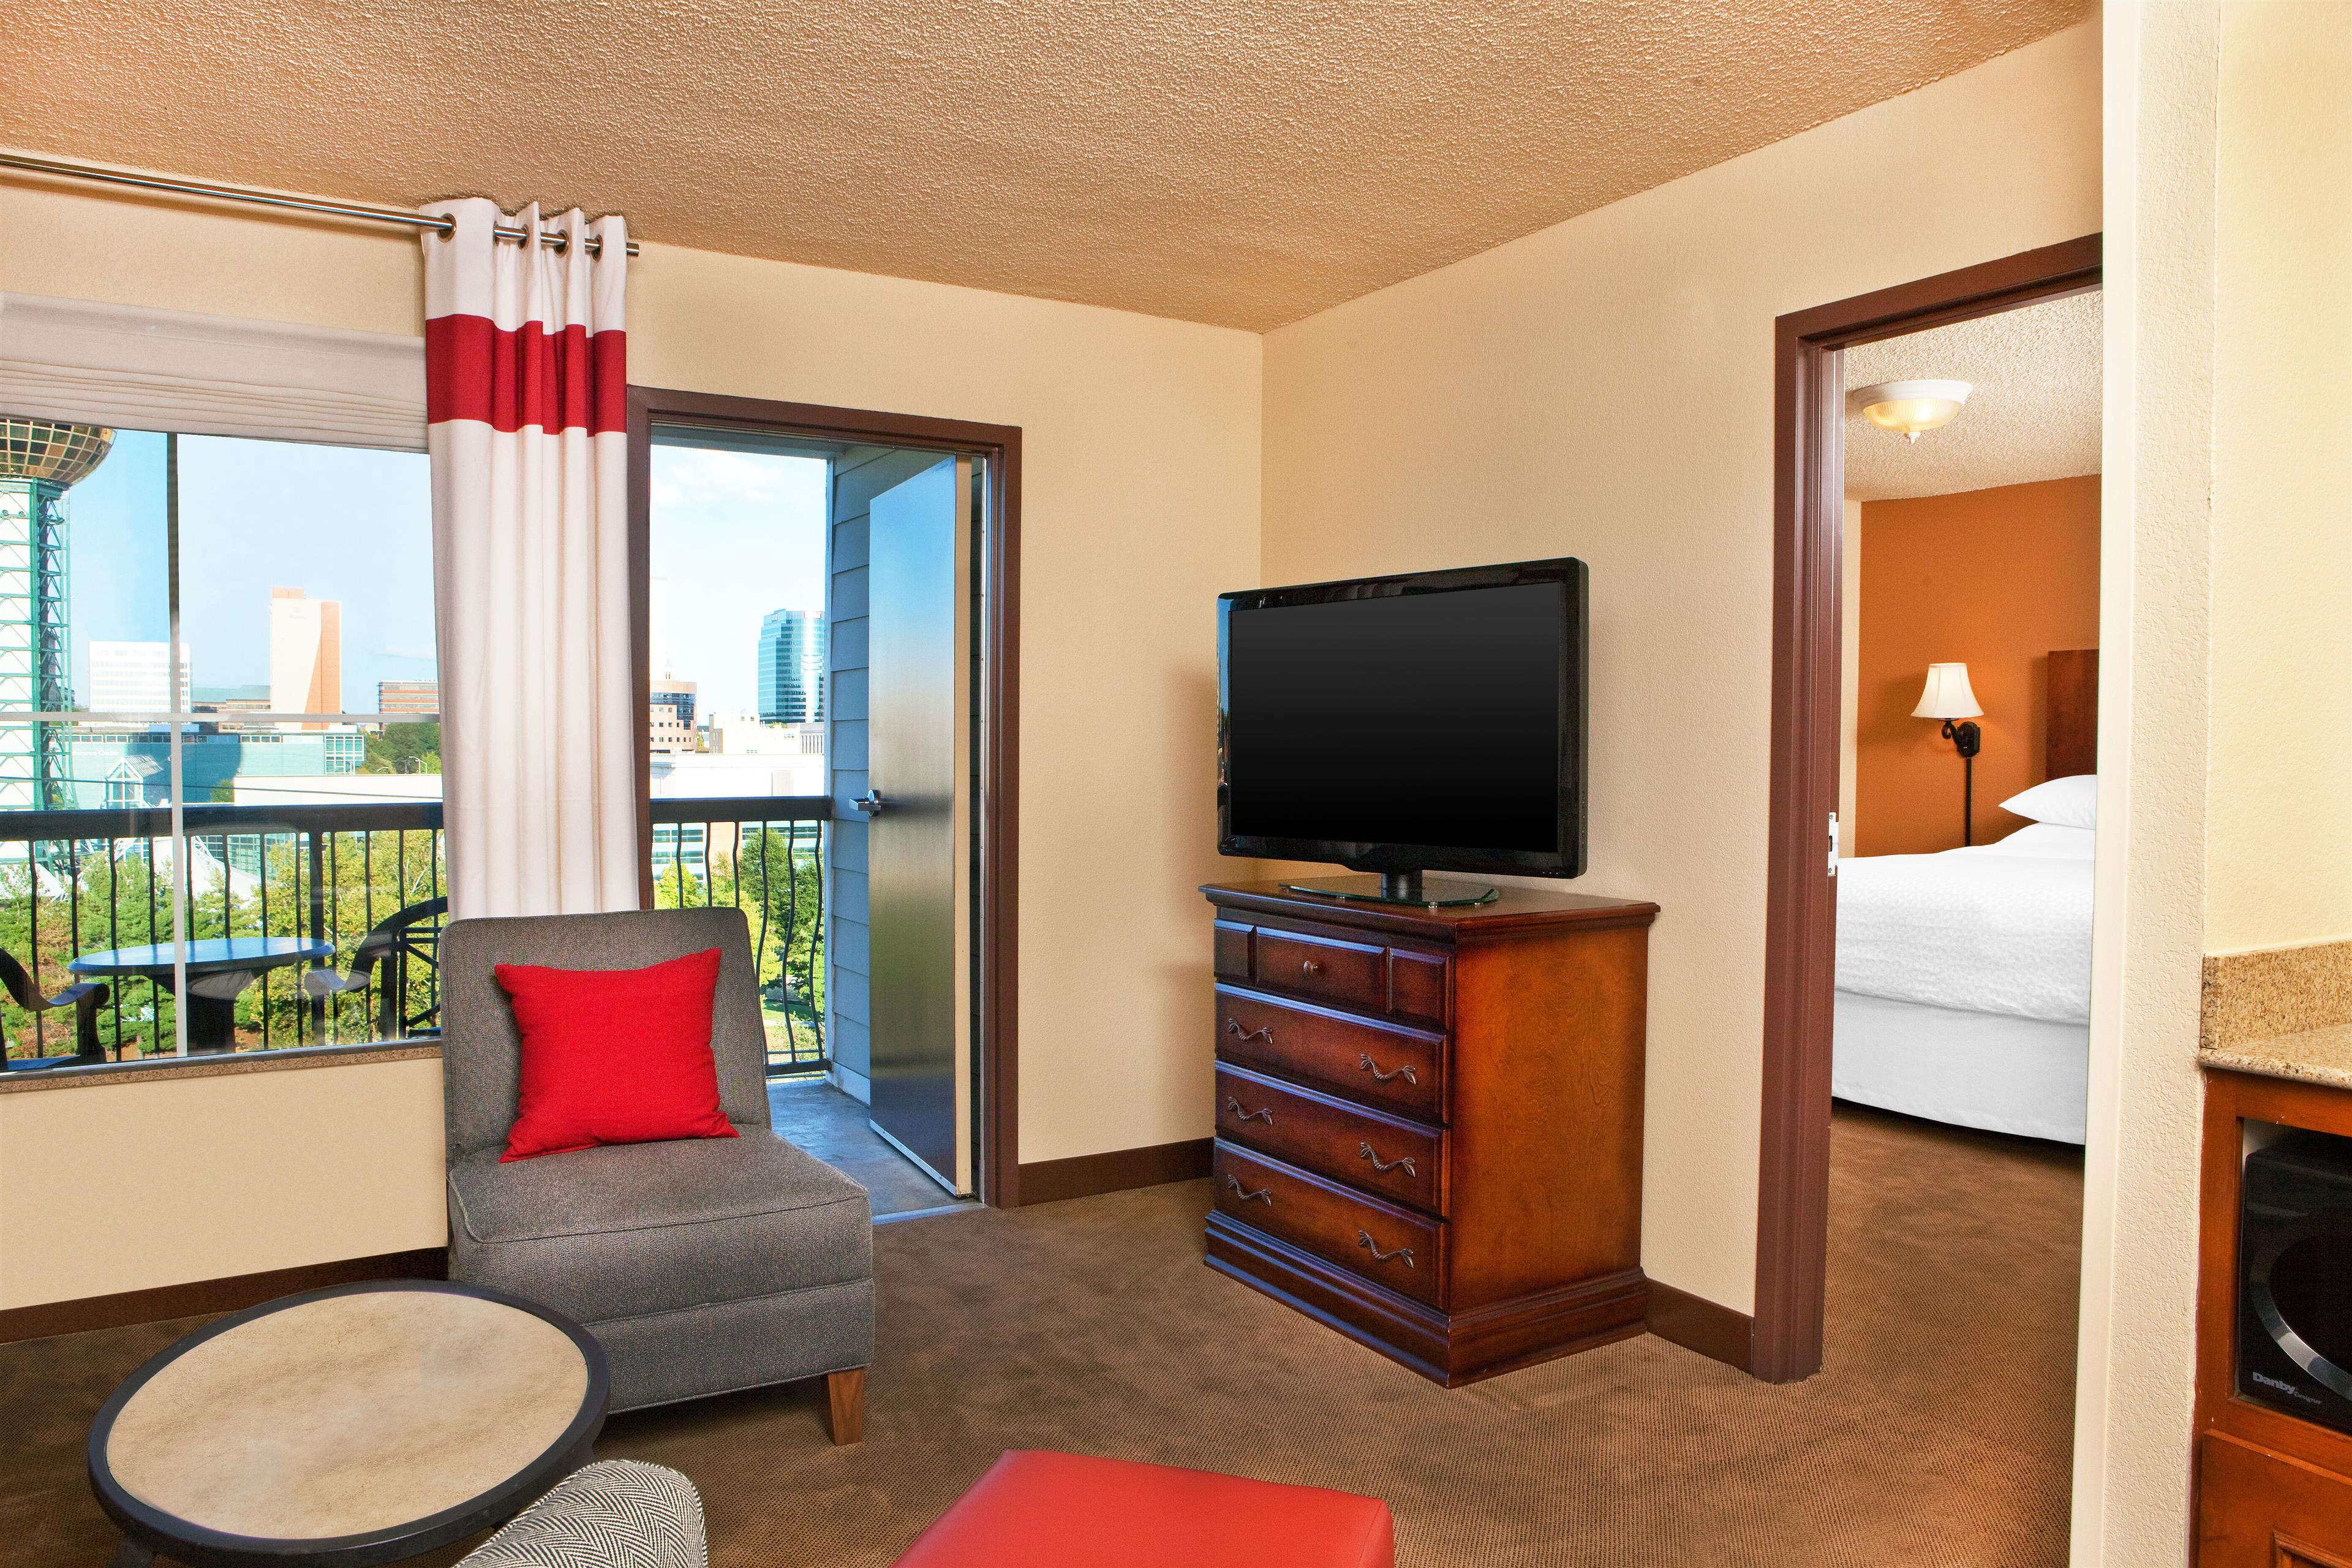 Four Points by Sheraton Knoxville Cumberland House Hotel image 5